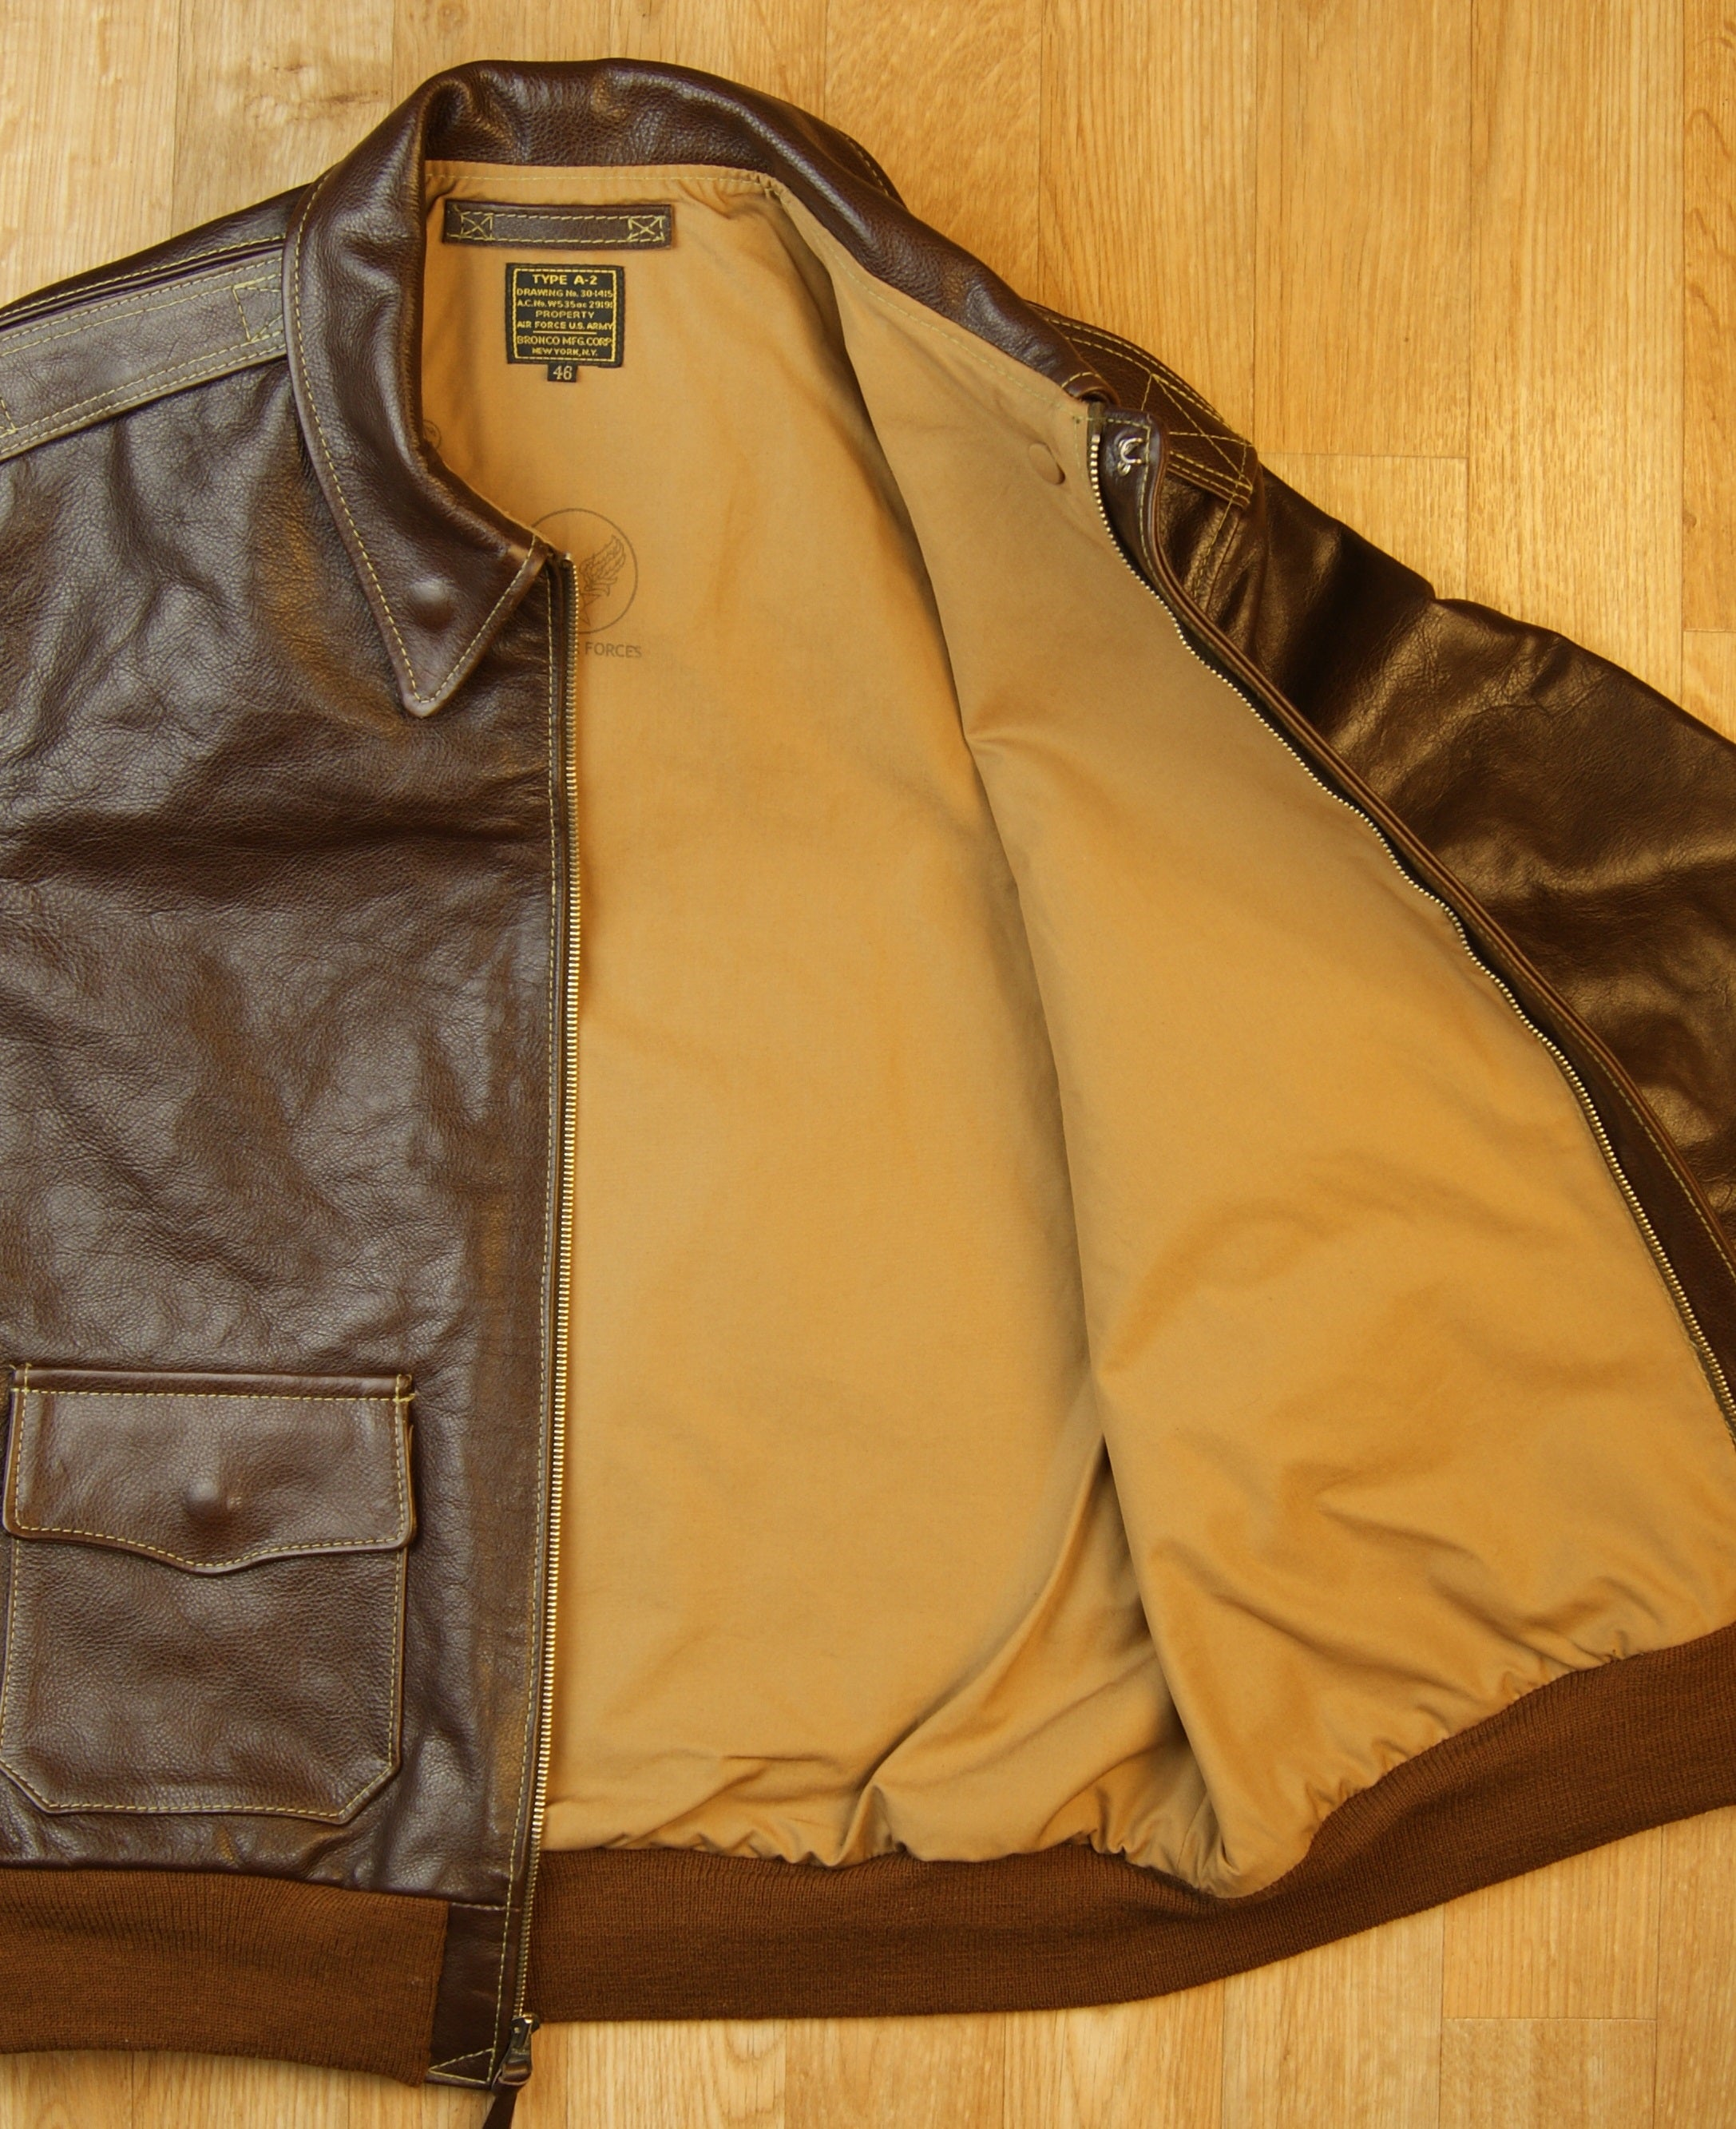 Aero A-2 Military Flight Jacket, size 46, Seal Vicenza Horsehide